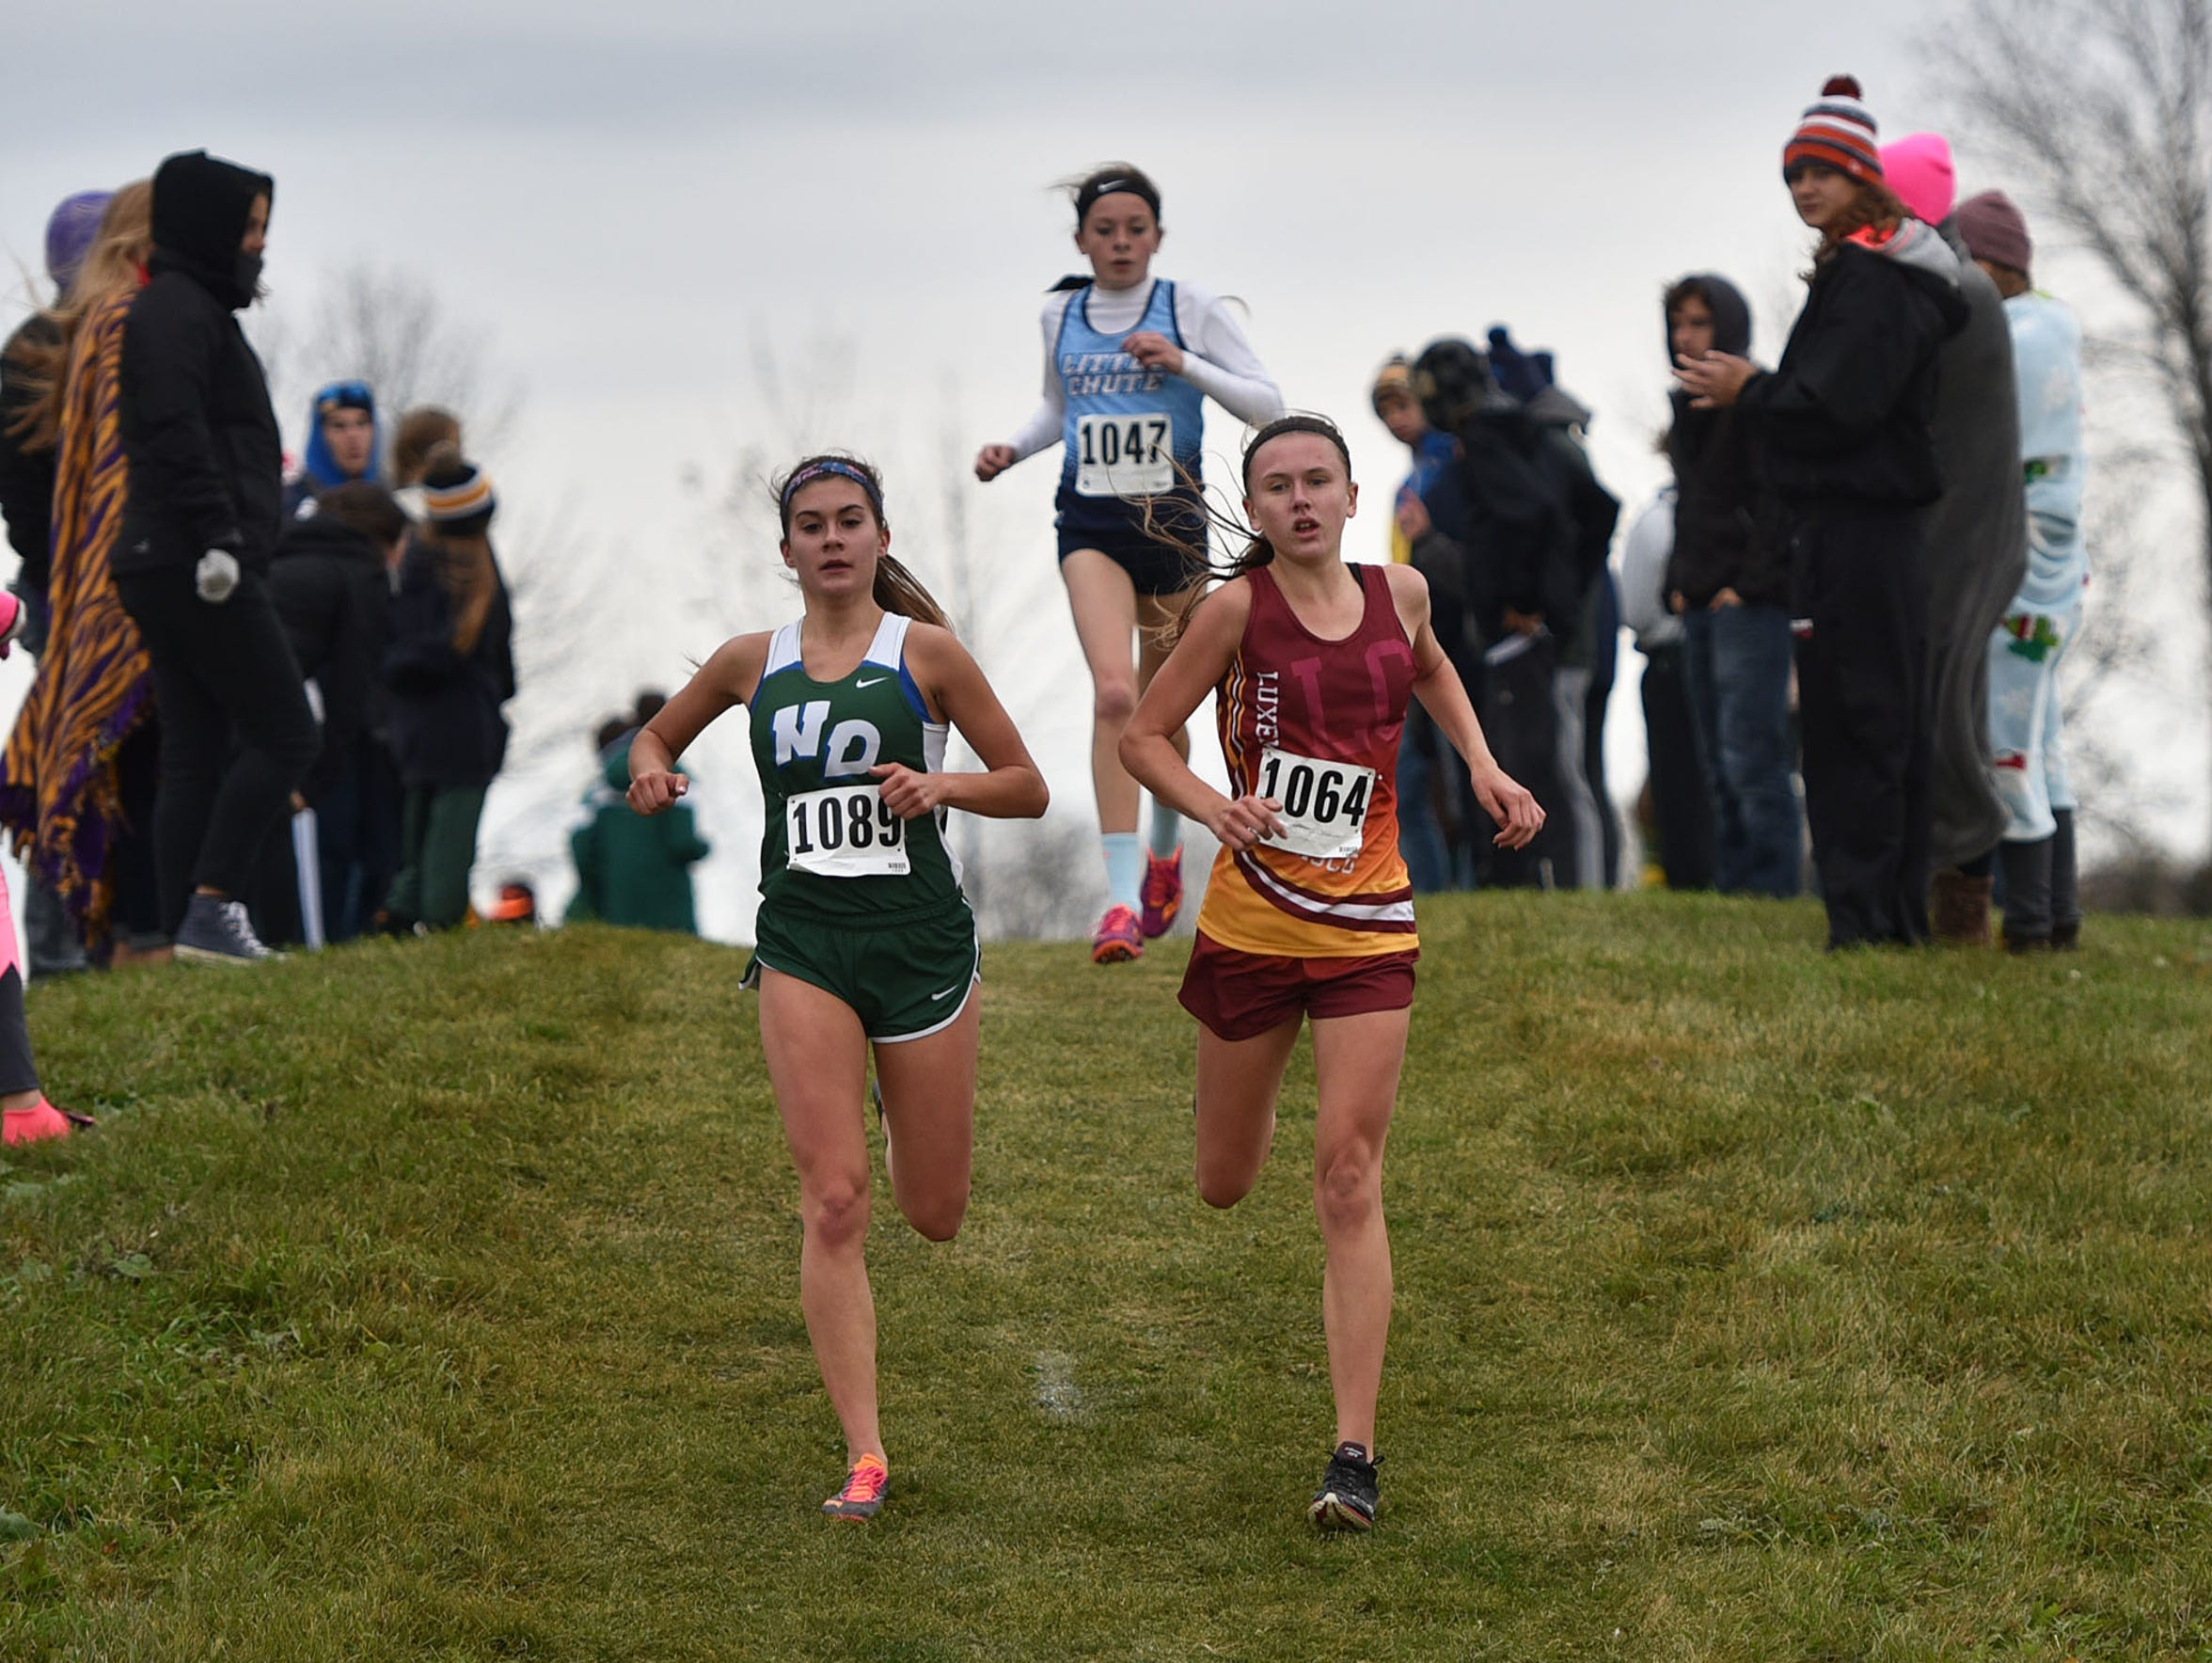 Luxemburg-Casco's Jacie Legois, right, races with Green